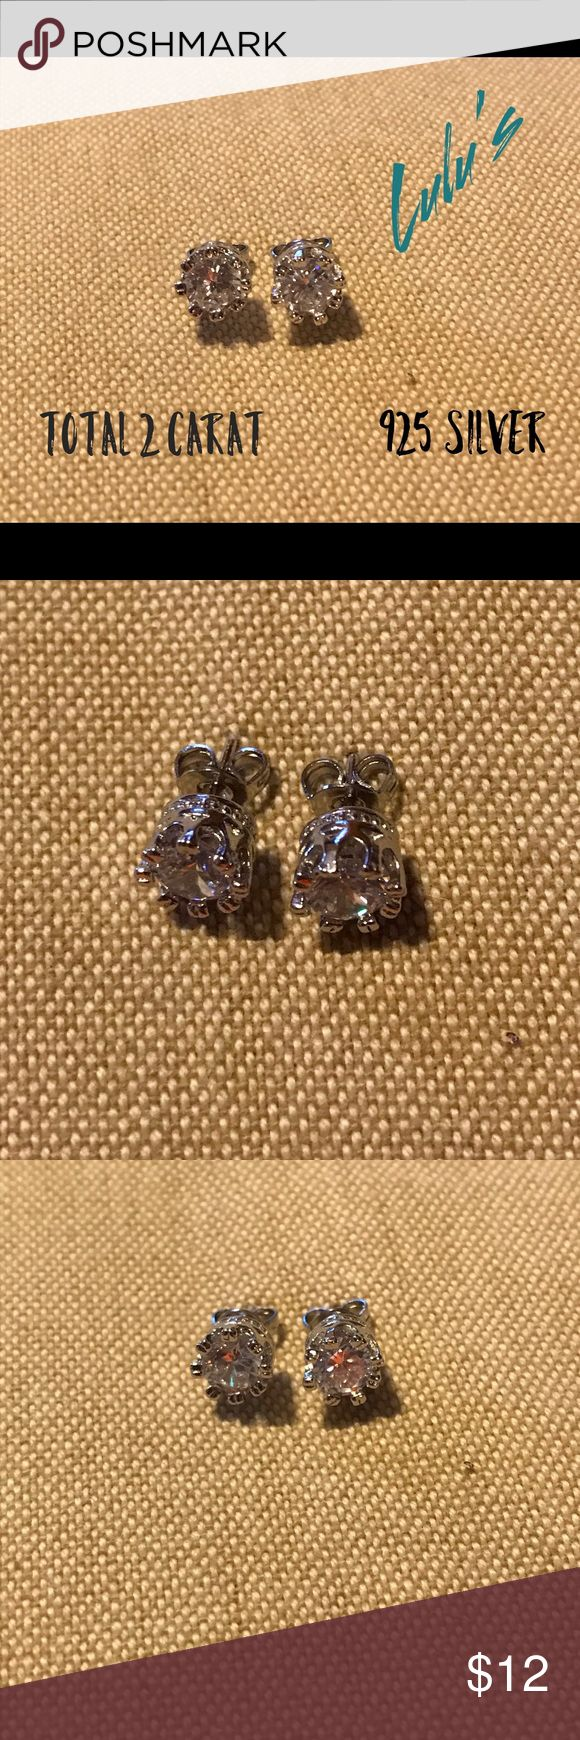 💎 CZ diamond earrings 💎 1 carat watch for a total of 2 carats, 925 silver, flawless stones sparkle like the real thing. Cute for everyday jewelry         ♥️offers welcome        ♥️fast shipping         💔no trades  Item #001 Jewelry Earrings